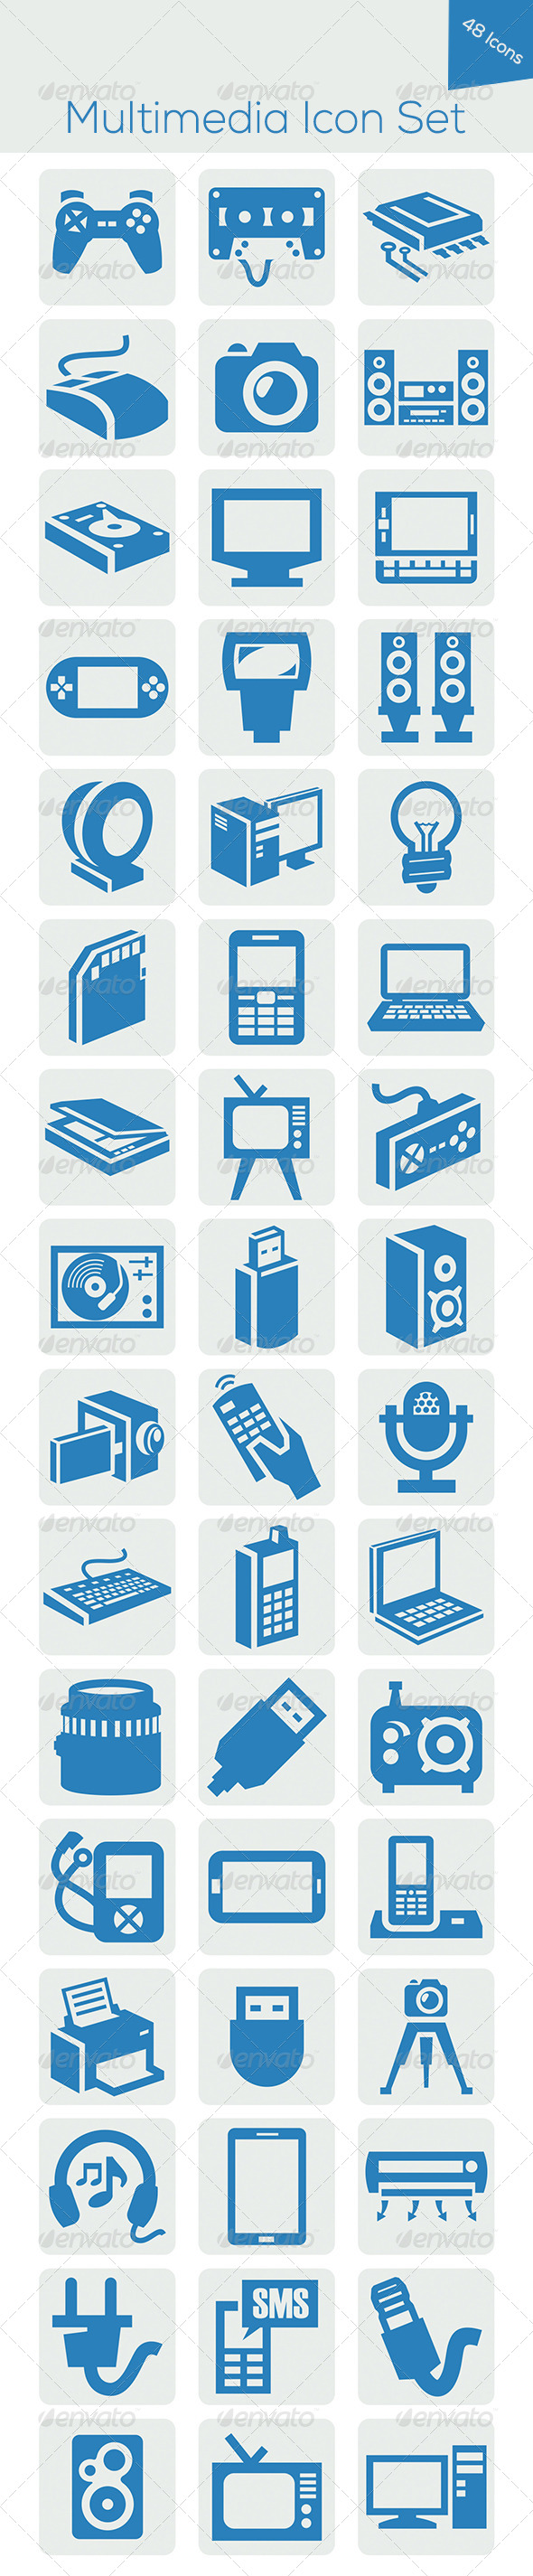 GraphicRiver Multimedia Icon Set 5618300